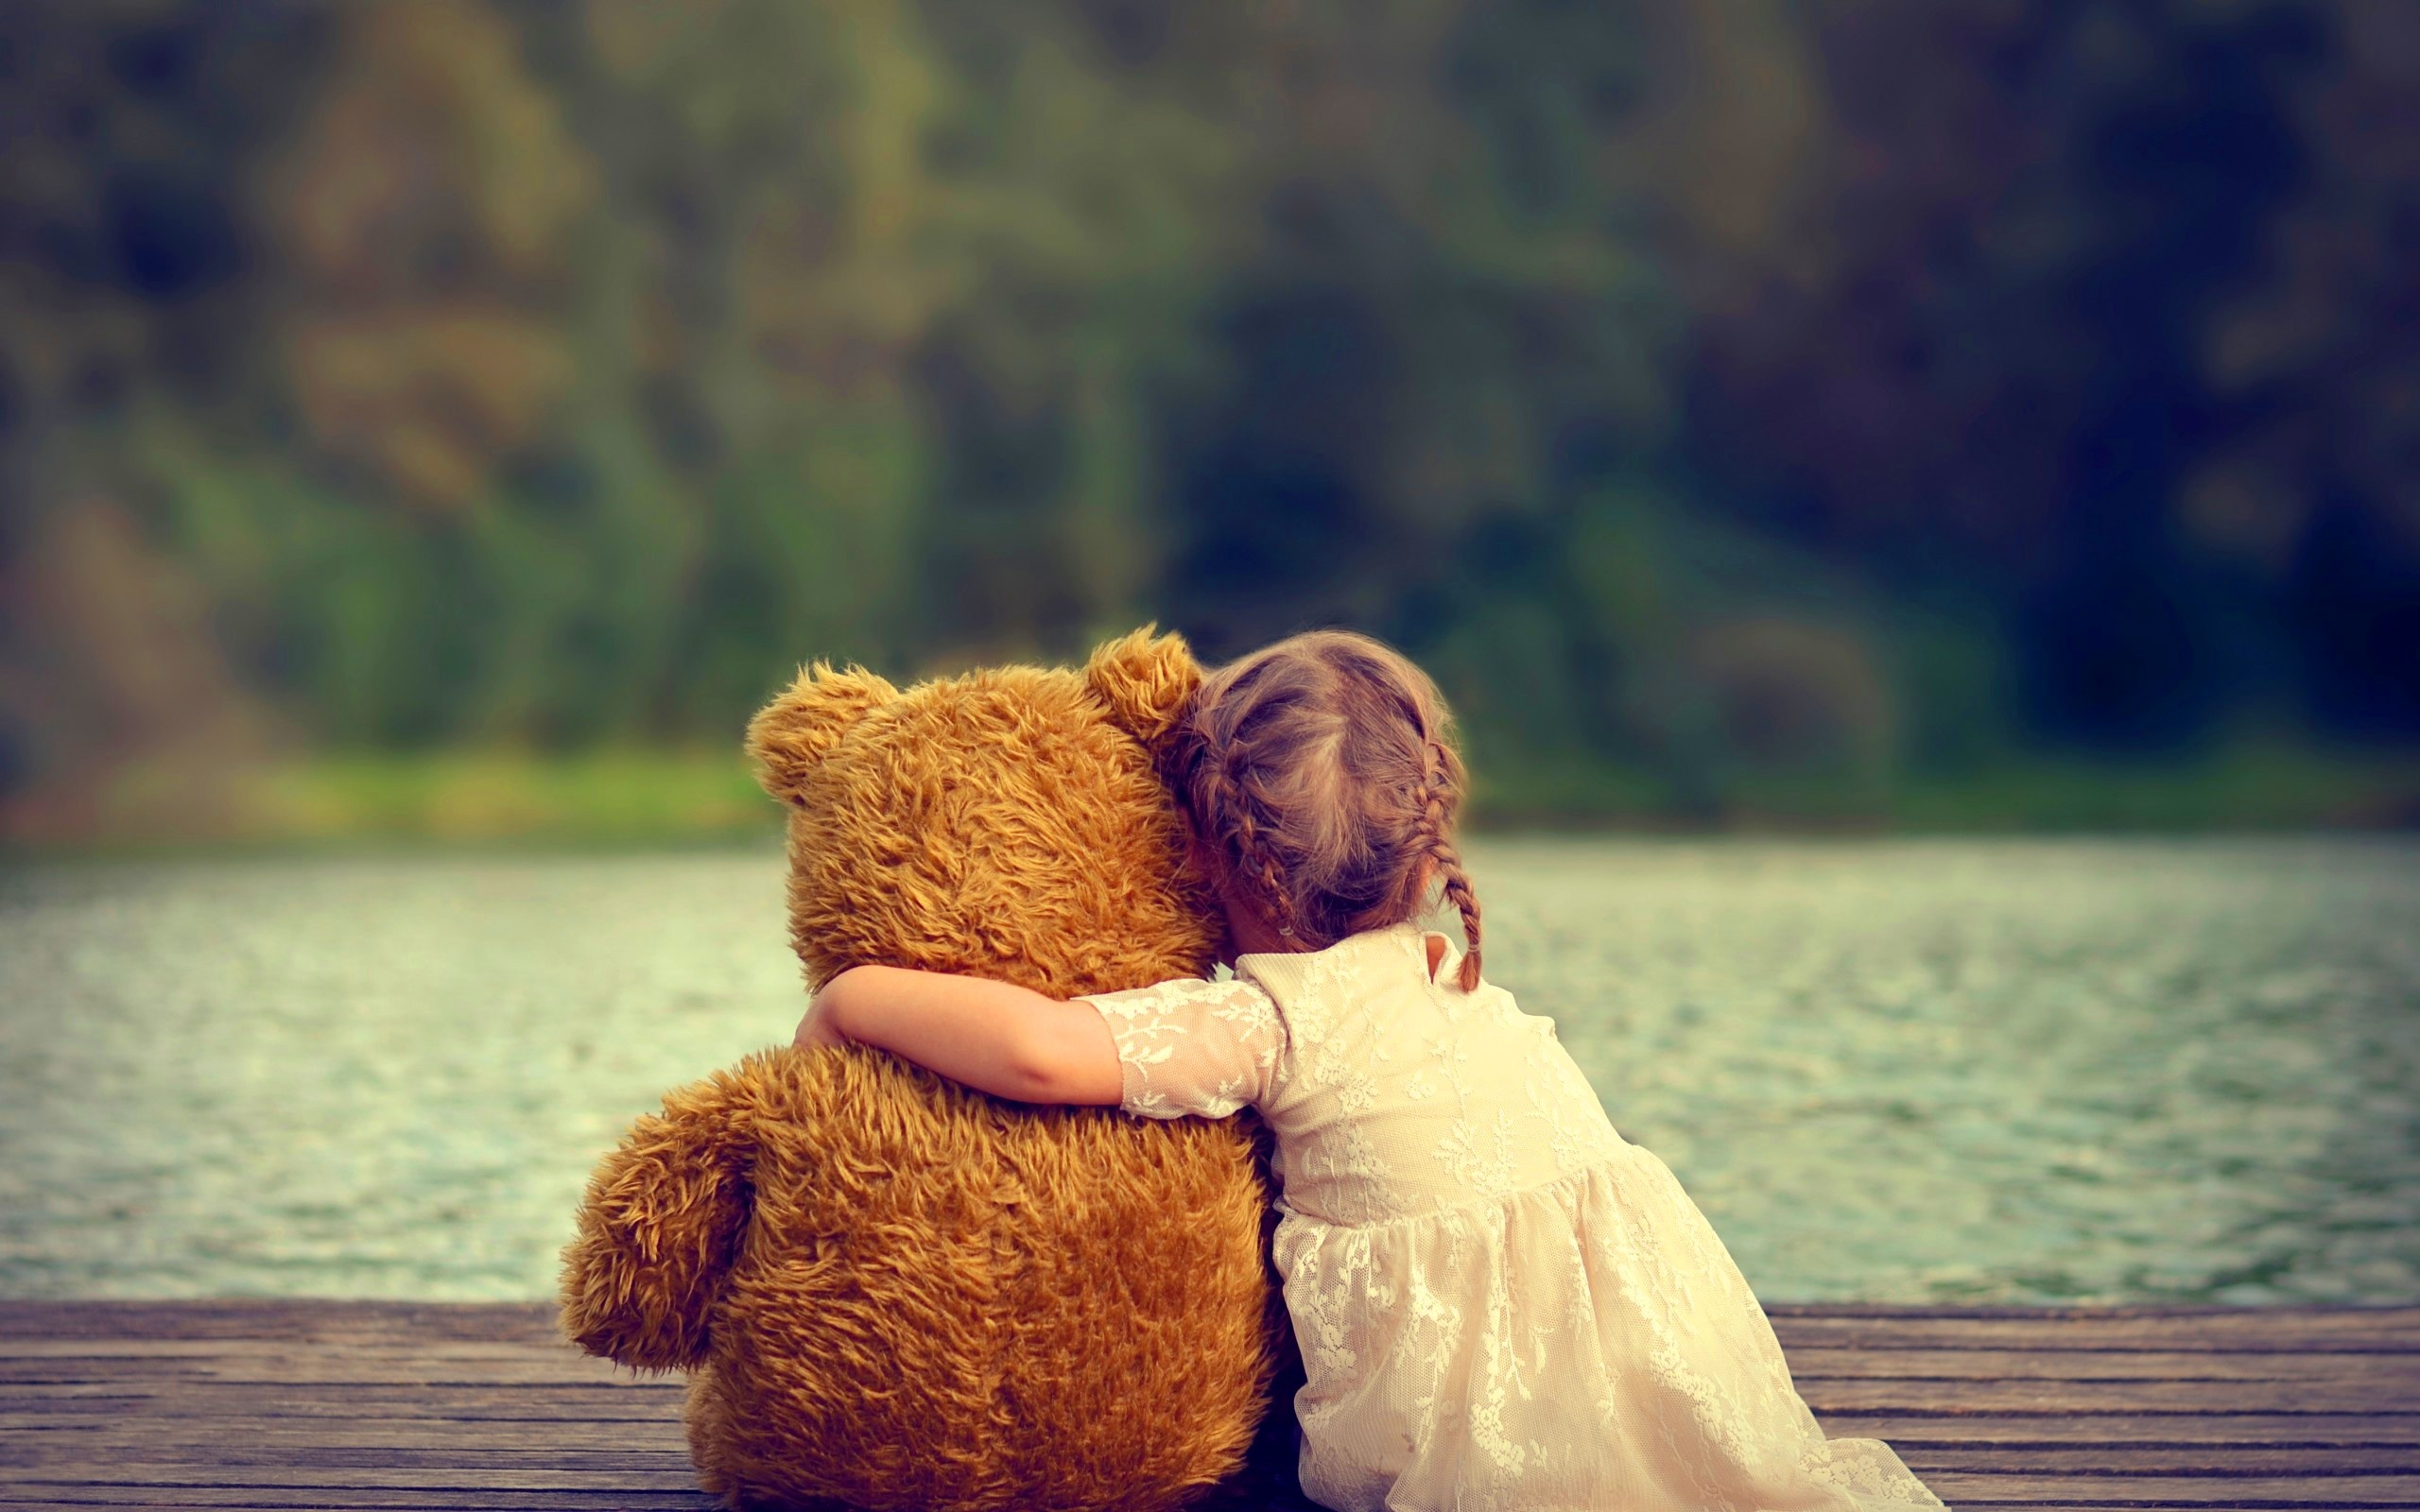 Cute Girl With Teddy Bear Wallpaper Cute Girl Hugging Teddy Bear Wallpapers 2560x1600 721011